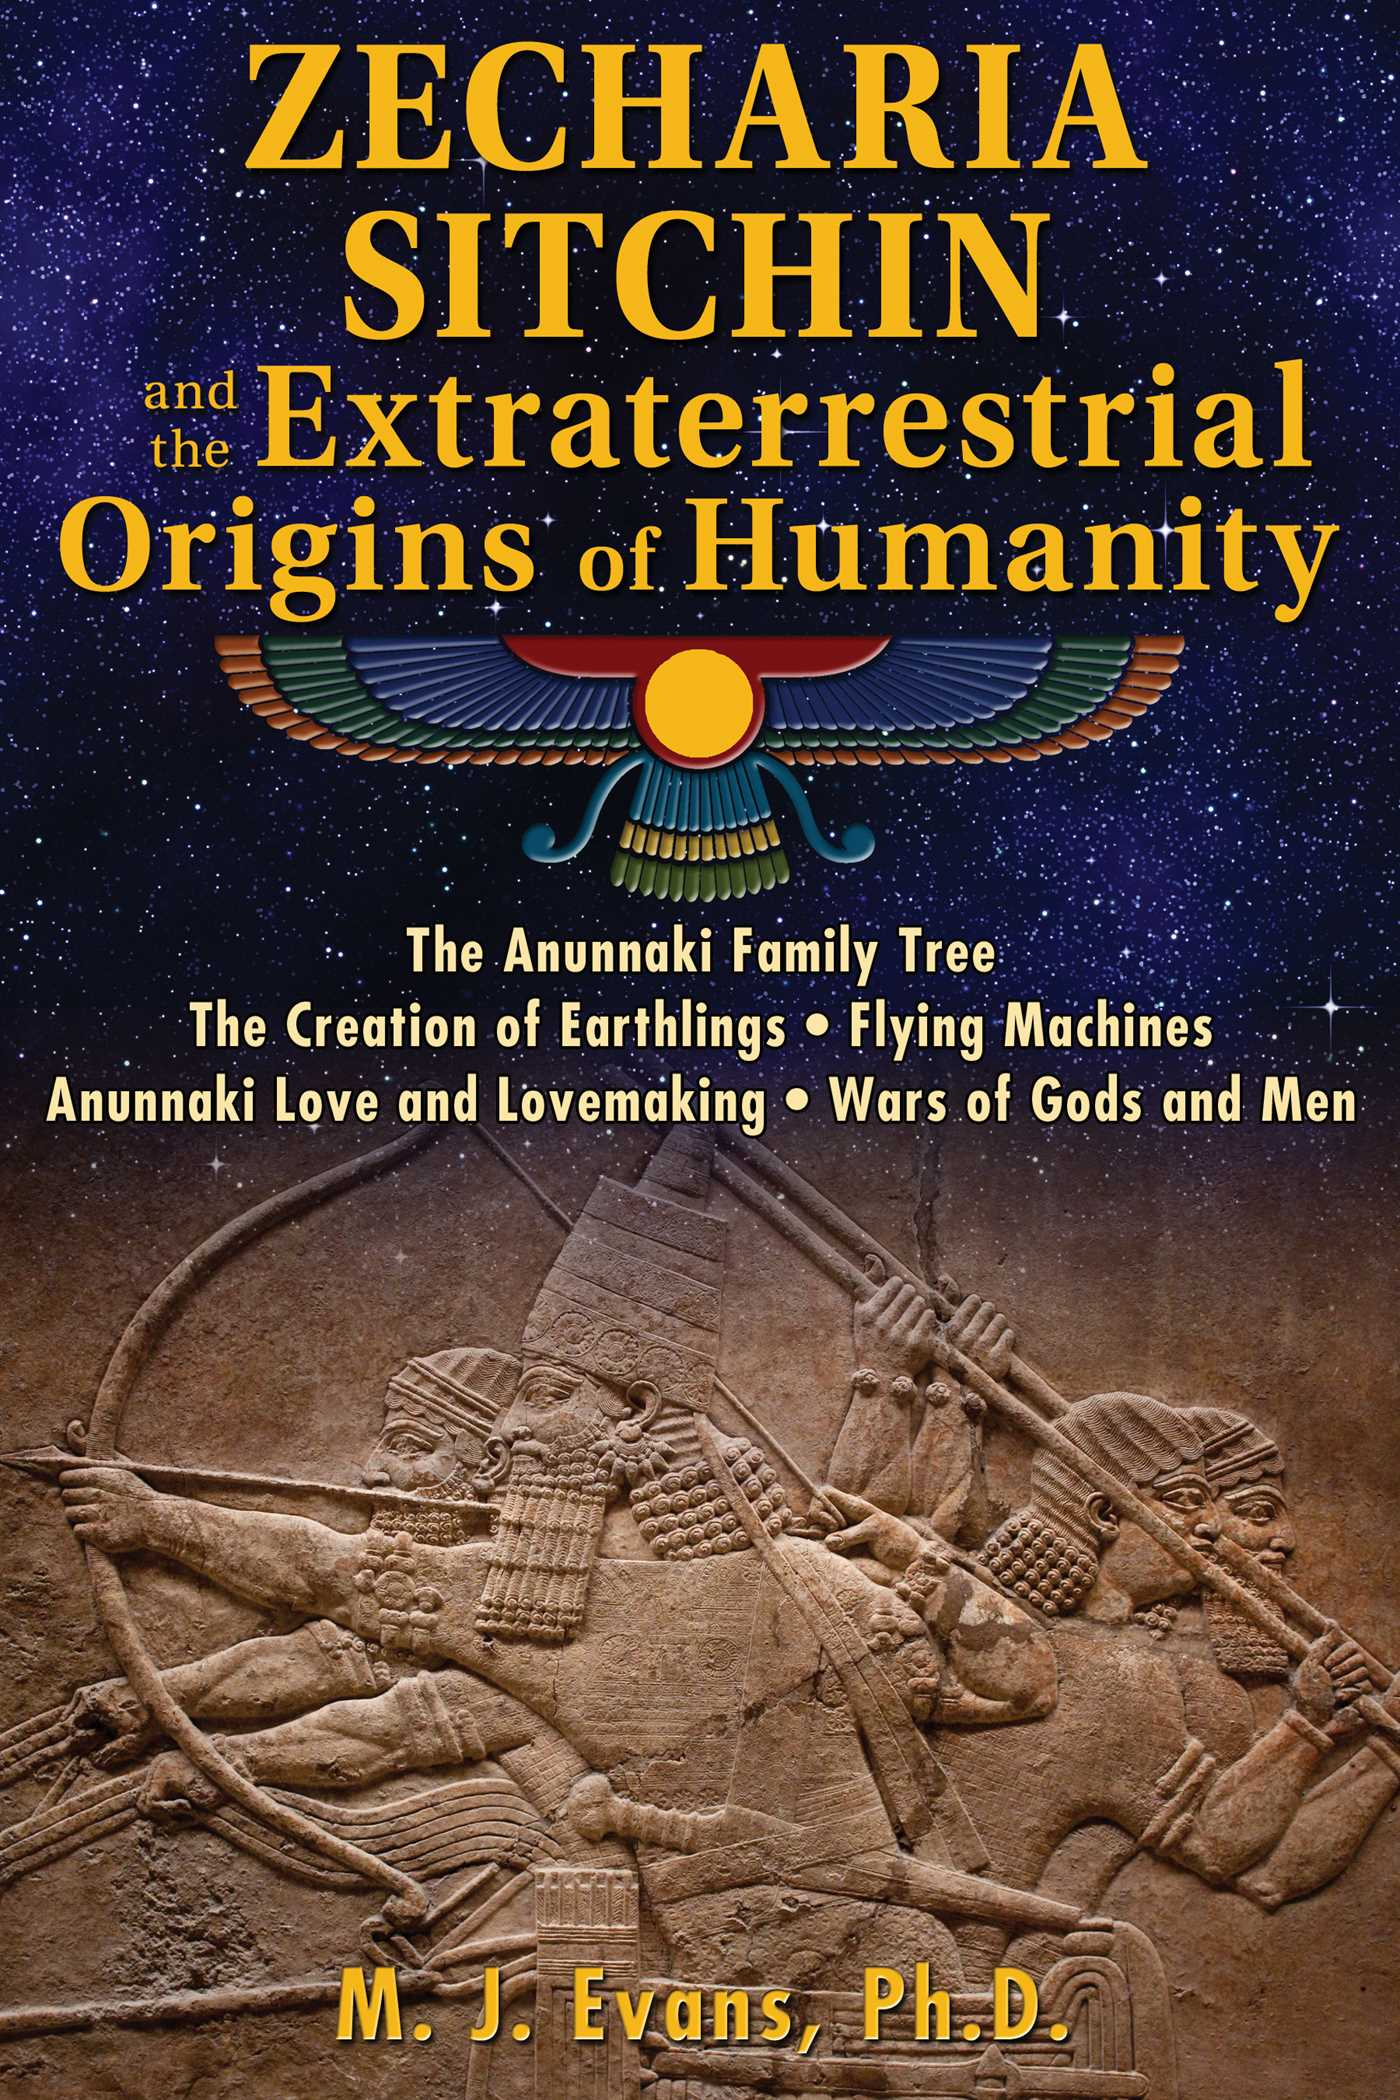 Zecharia sitchin and the extraterrestrial origins of humanity 9781591432555 hr